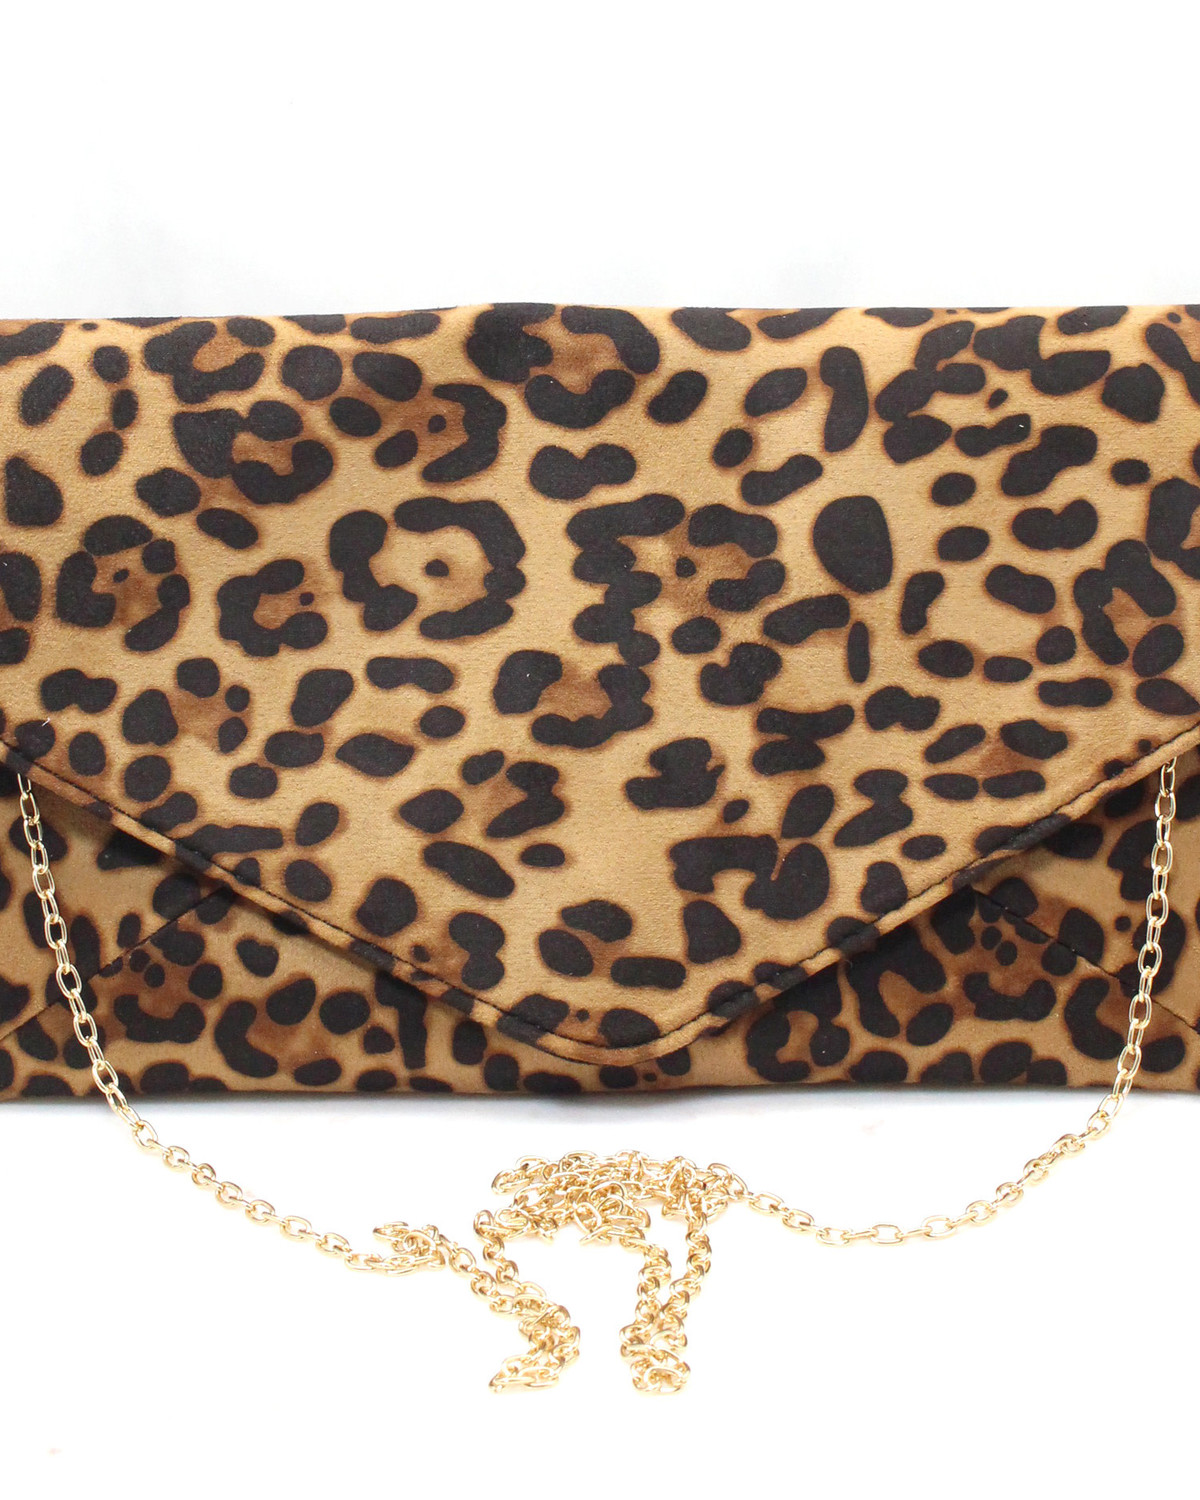 Wild Thoughts Clutch